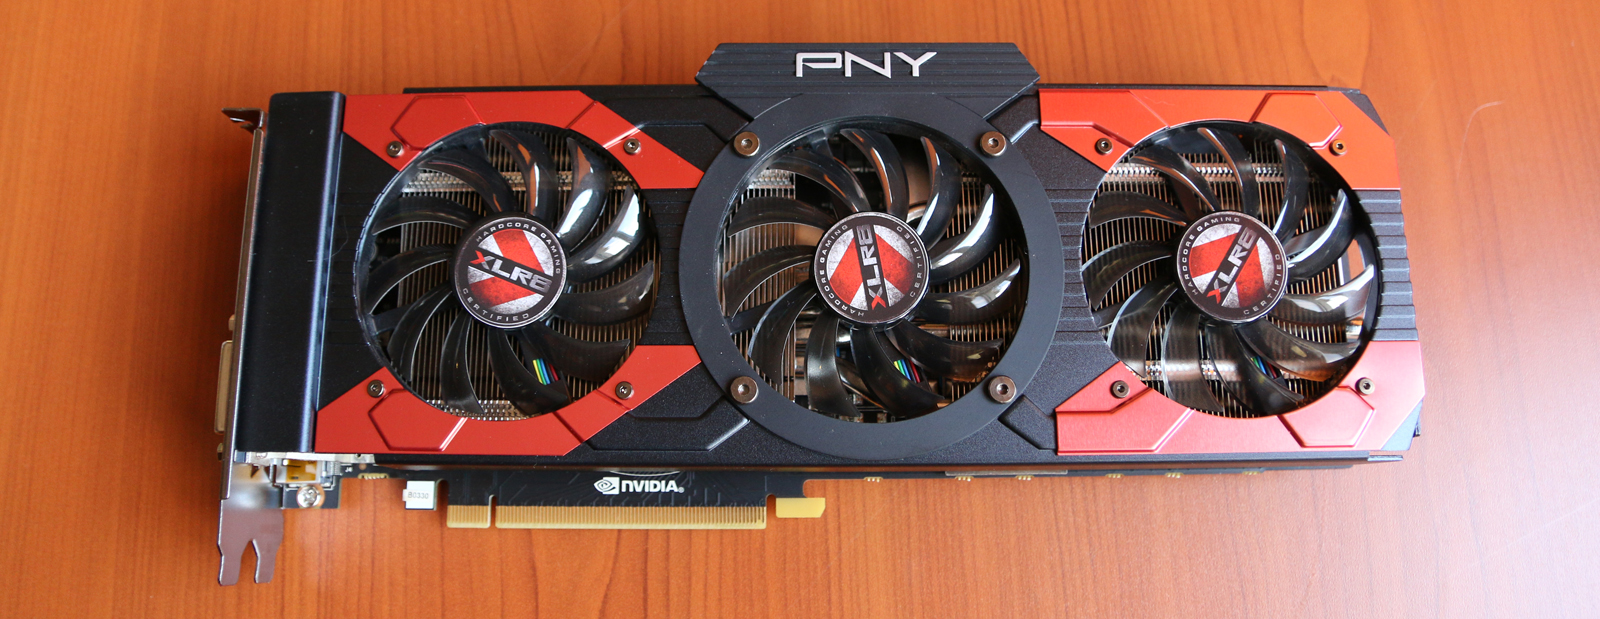 test -GEFORCE-PNY-GTX-1070-XLR8-OC-GAMING-1